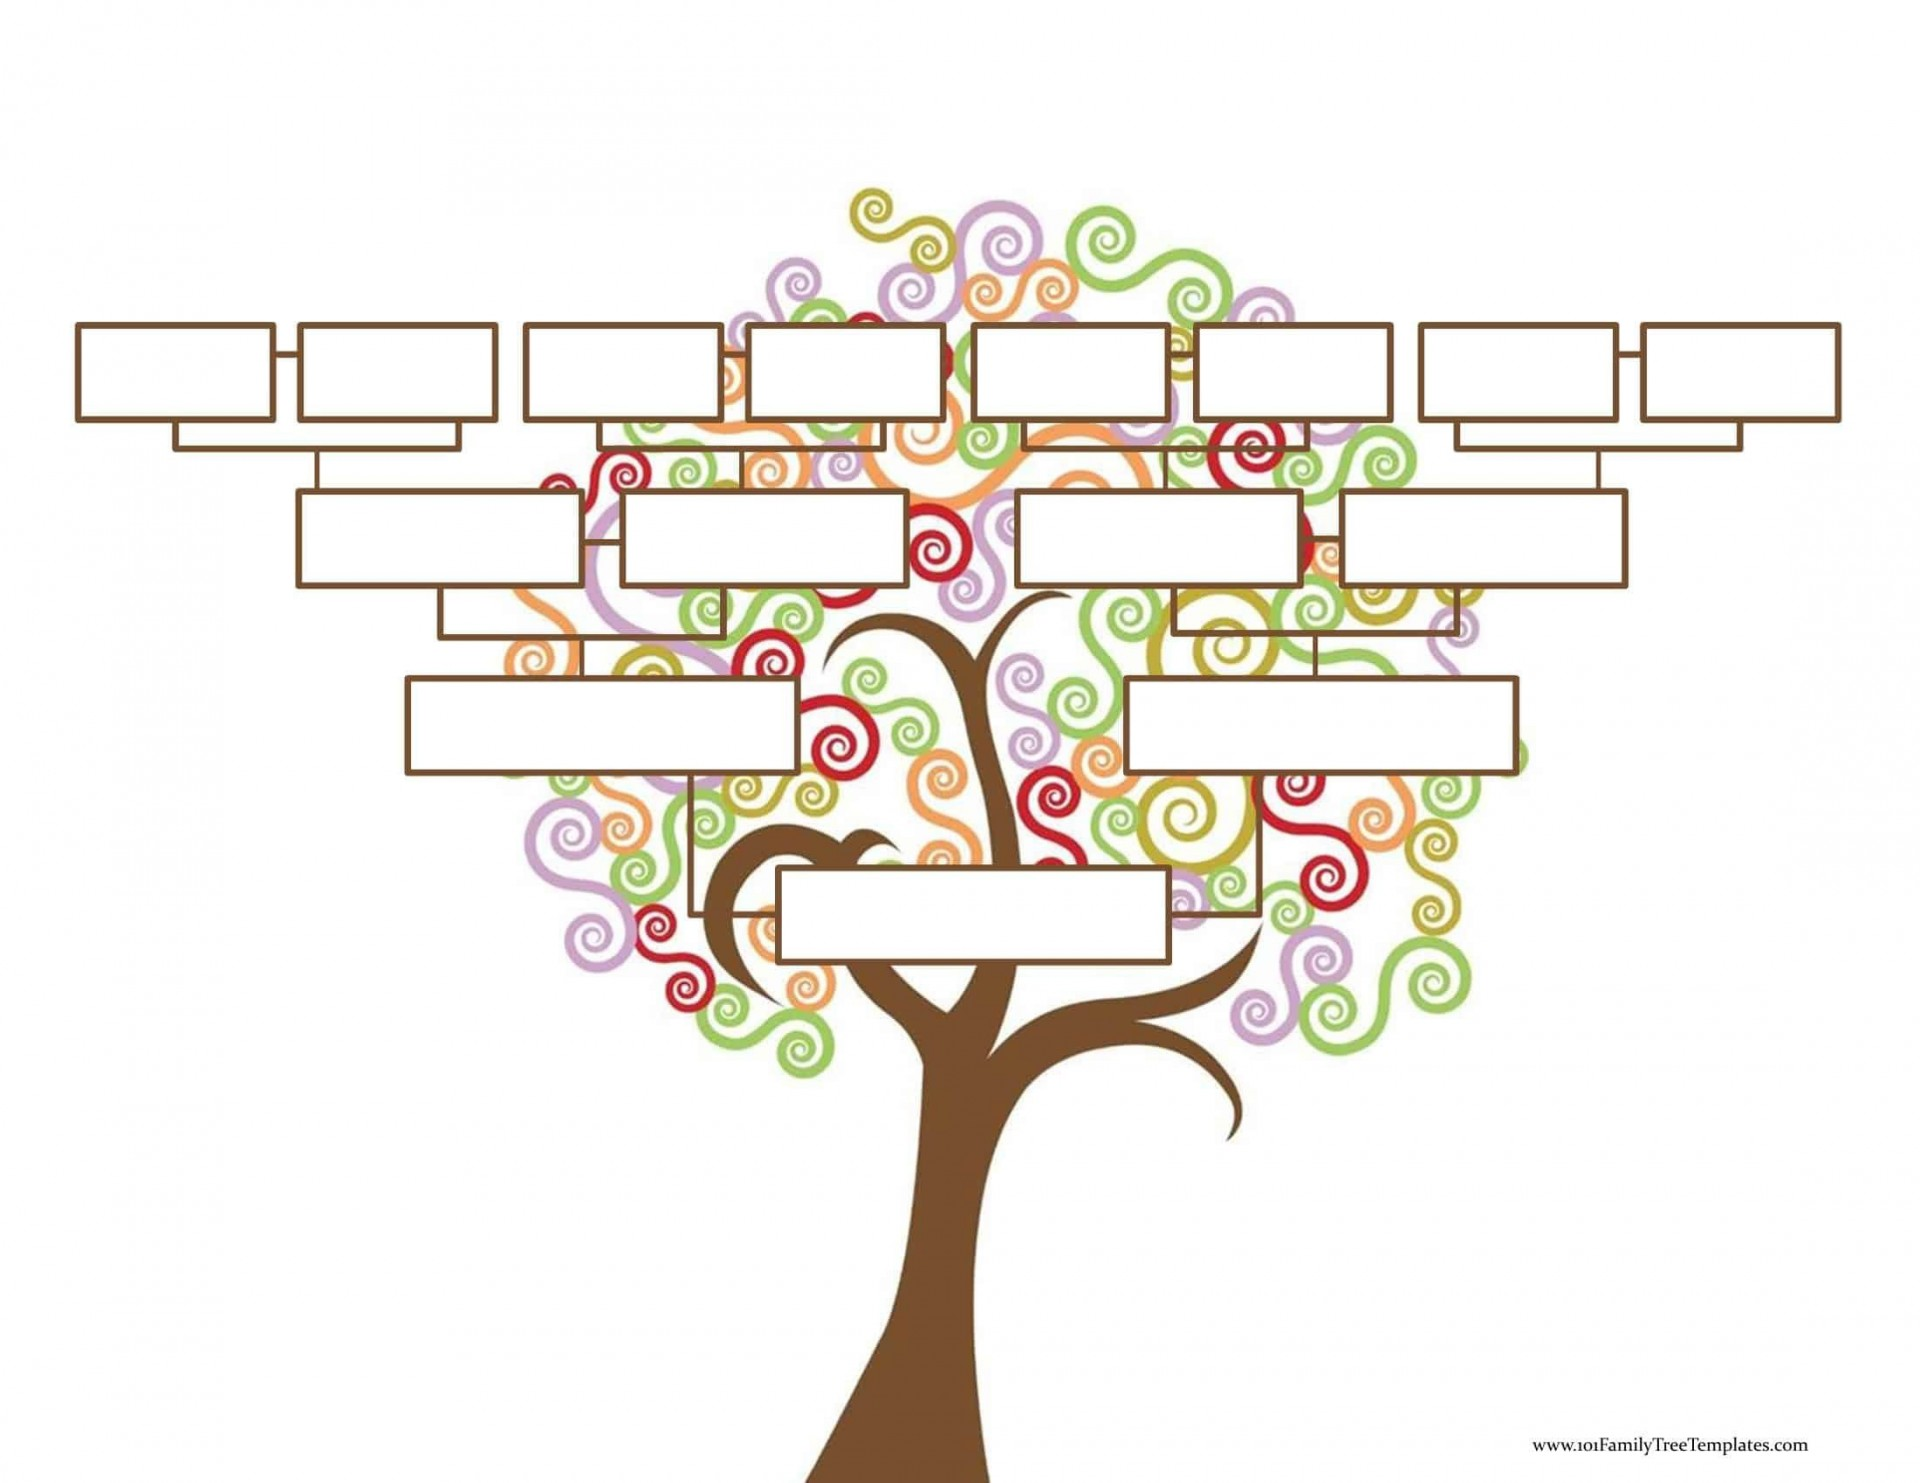 009 Exceptional Free Editable Family Tree Template High Resolution  With Sibling Powerpoint For Mac1920